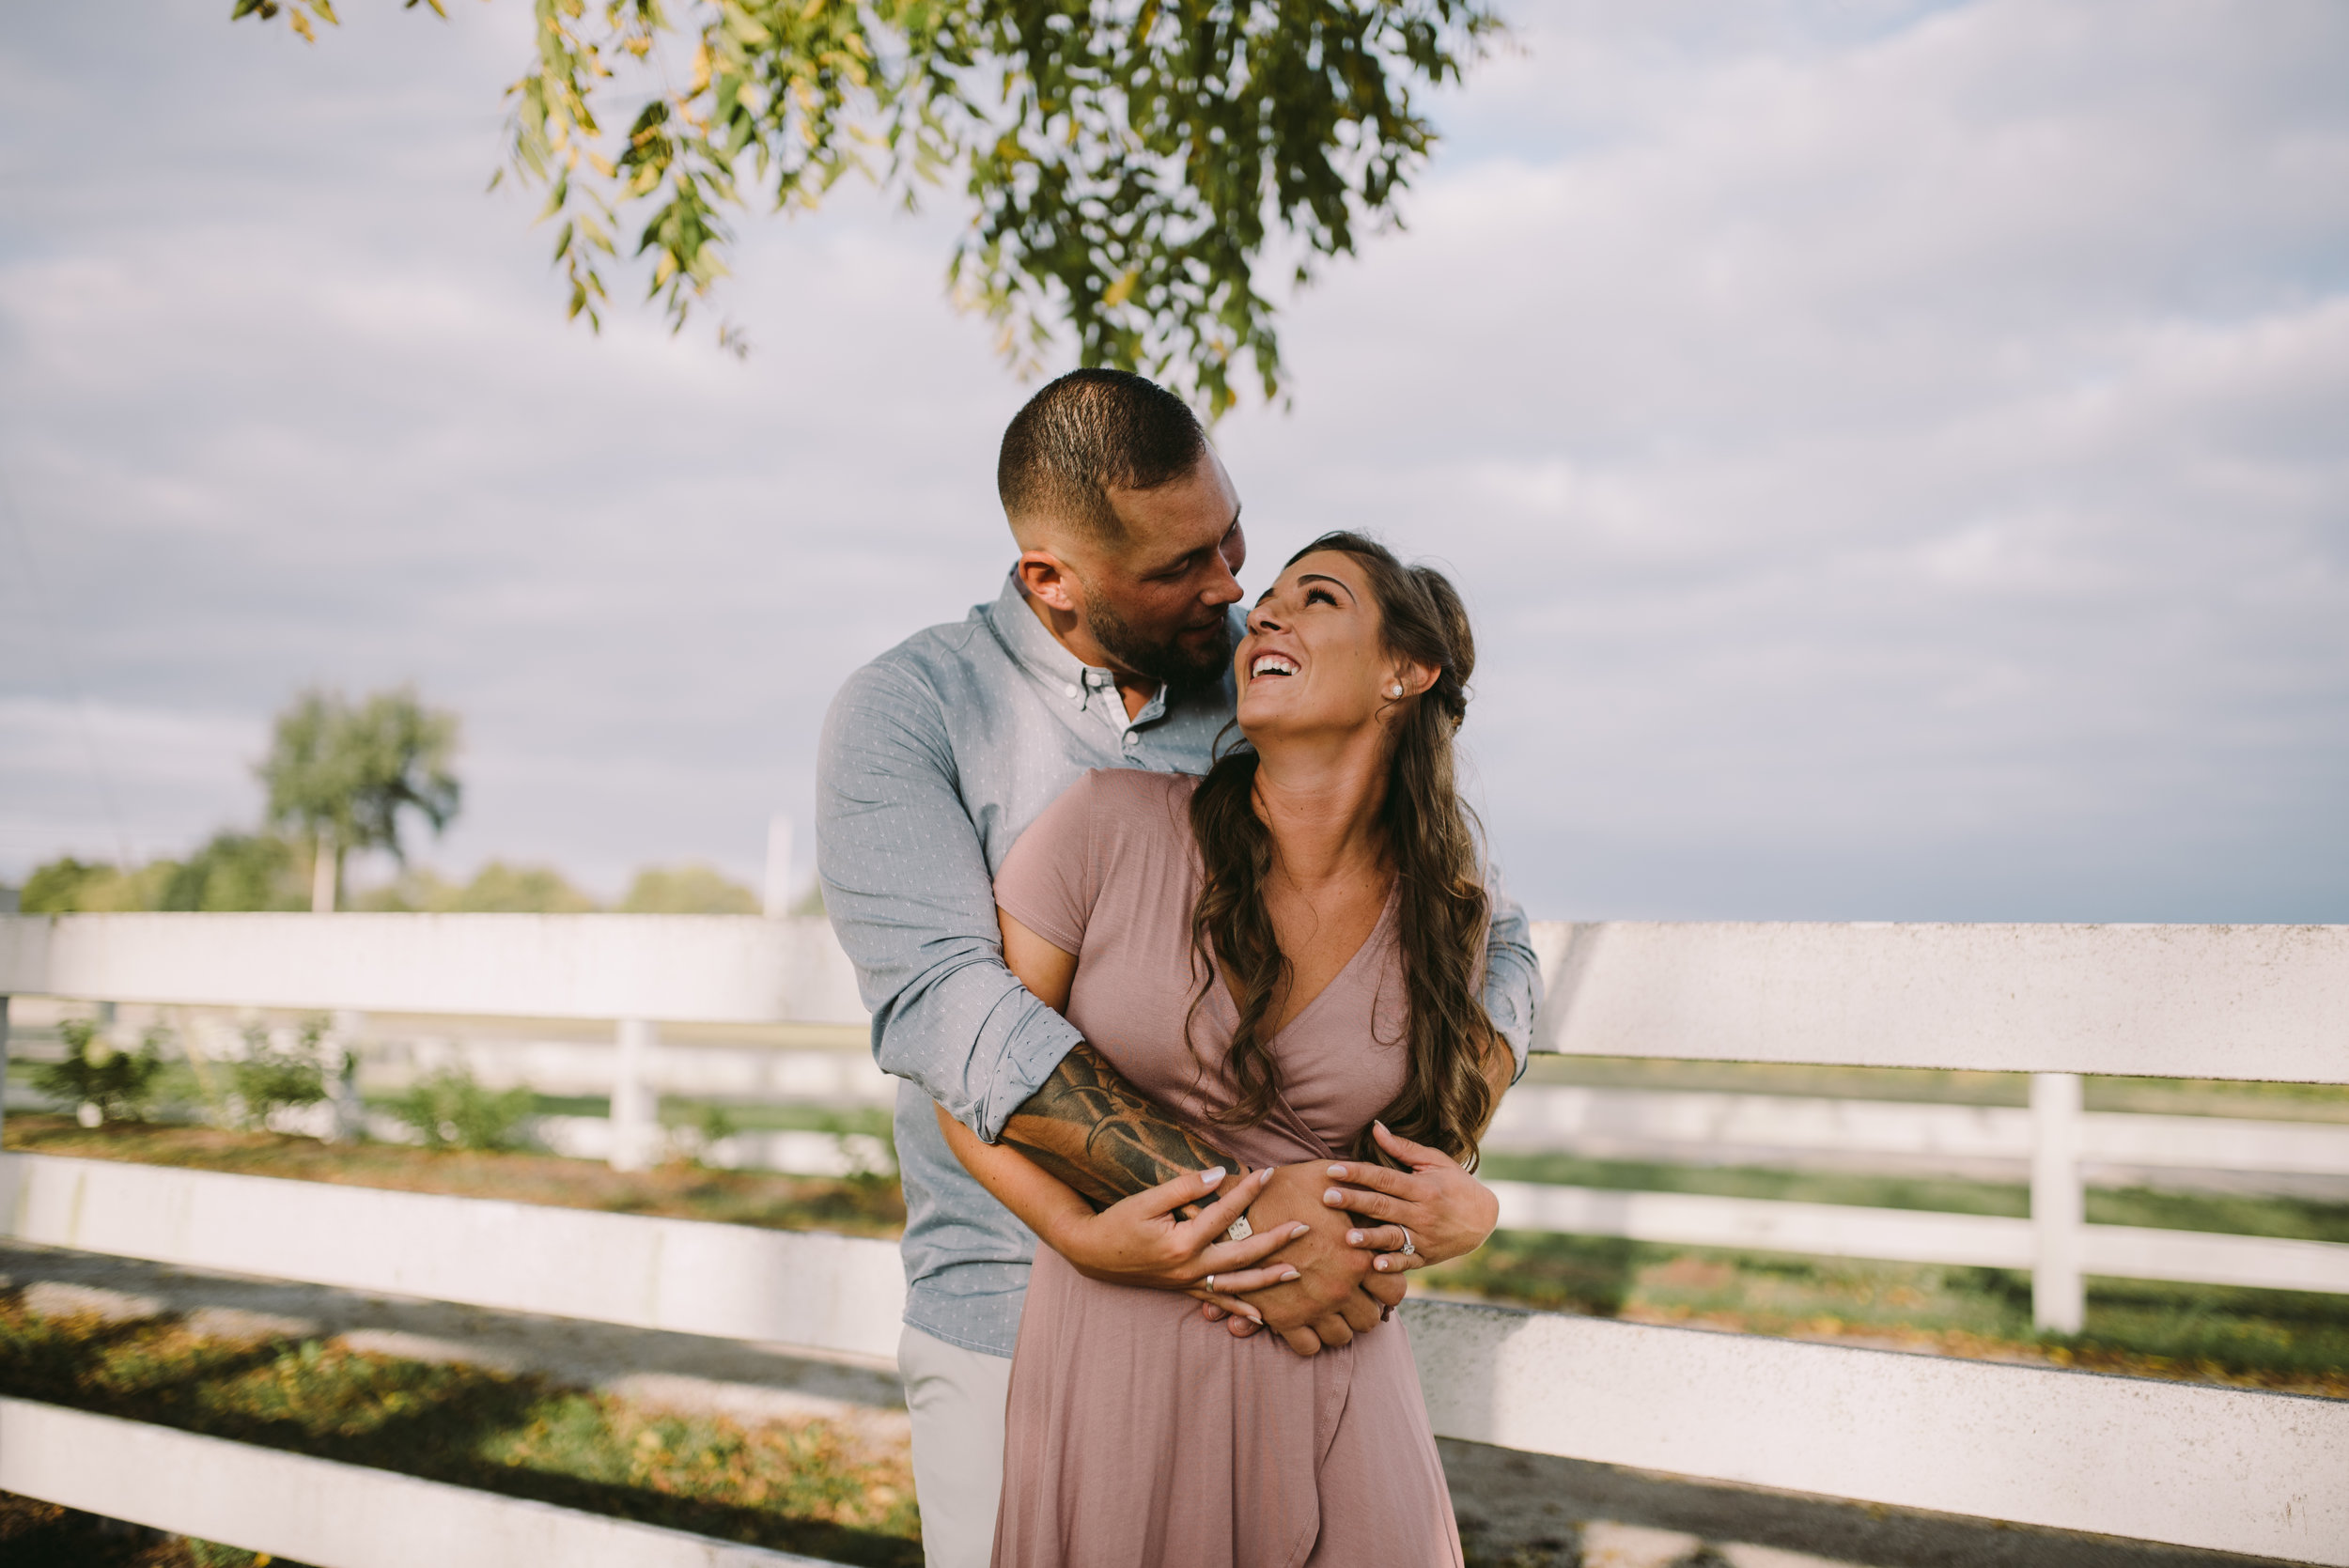 Brooke&Blake_EngagementSession_October2018_SamanthaRosePhotography_076.JPG